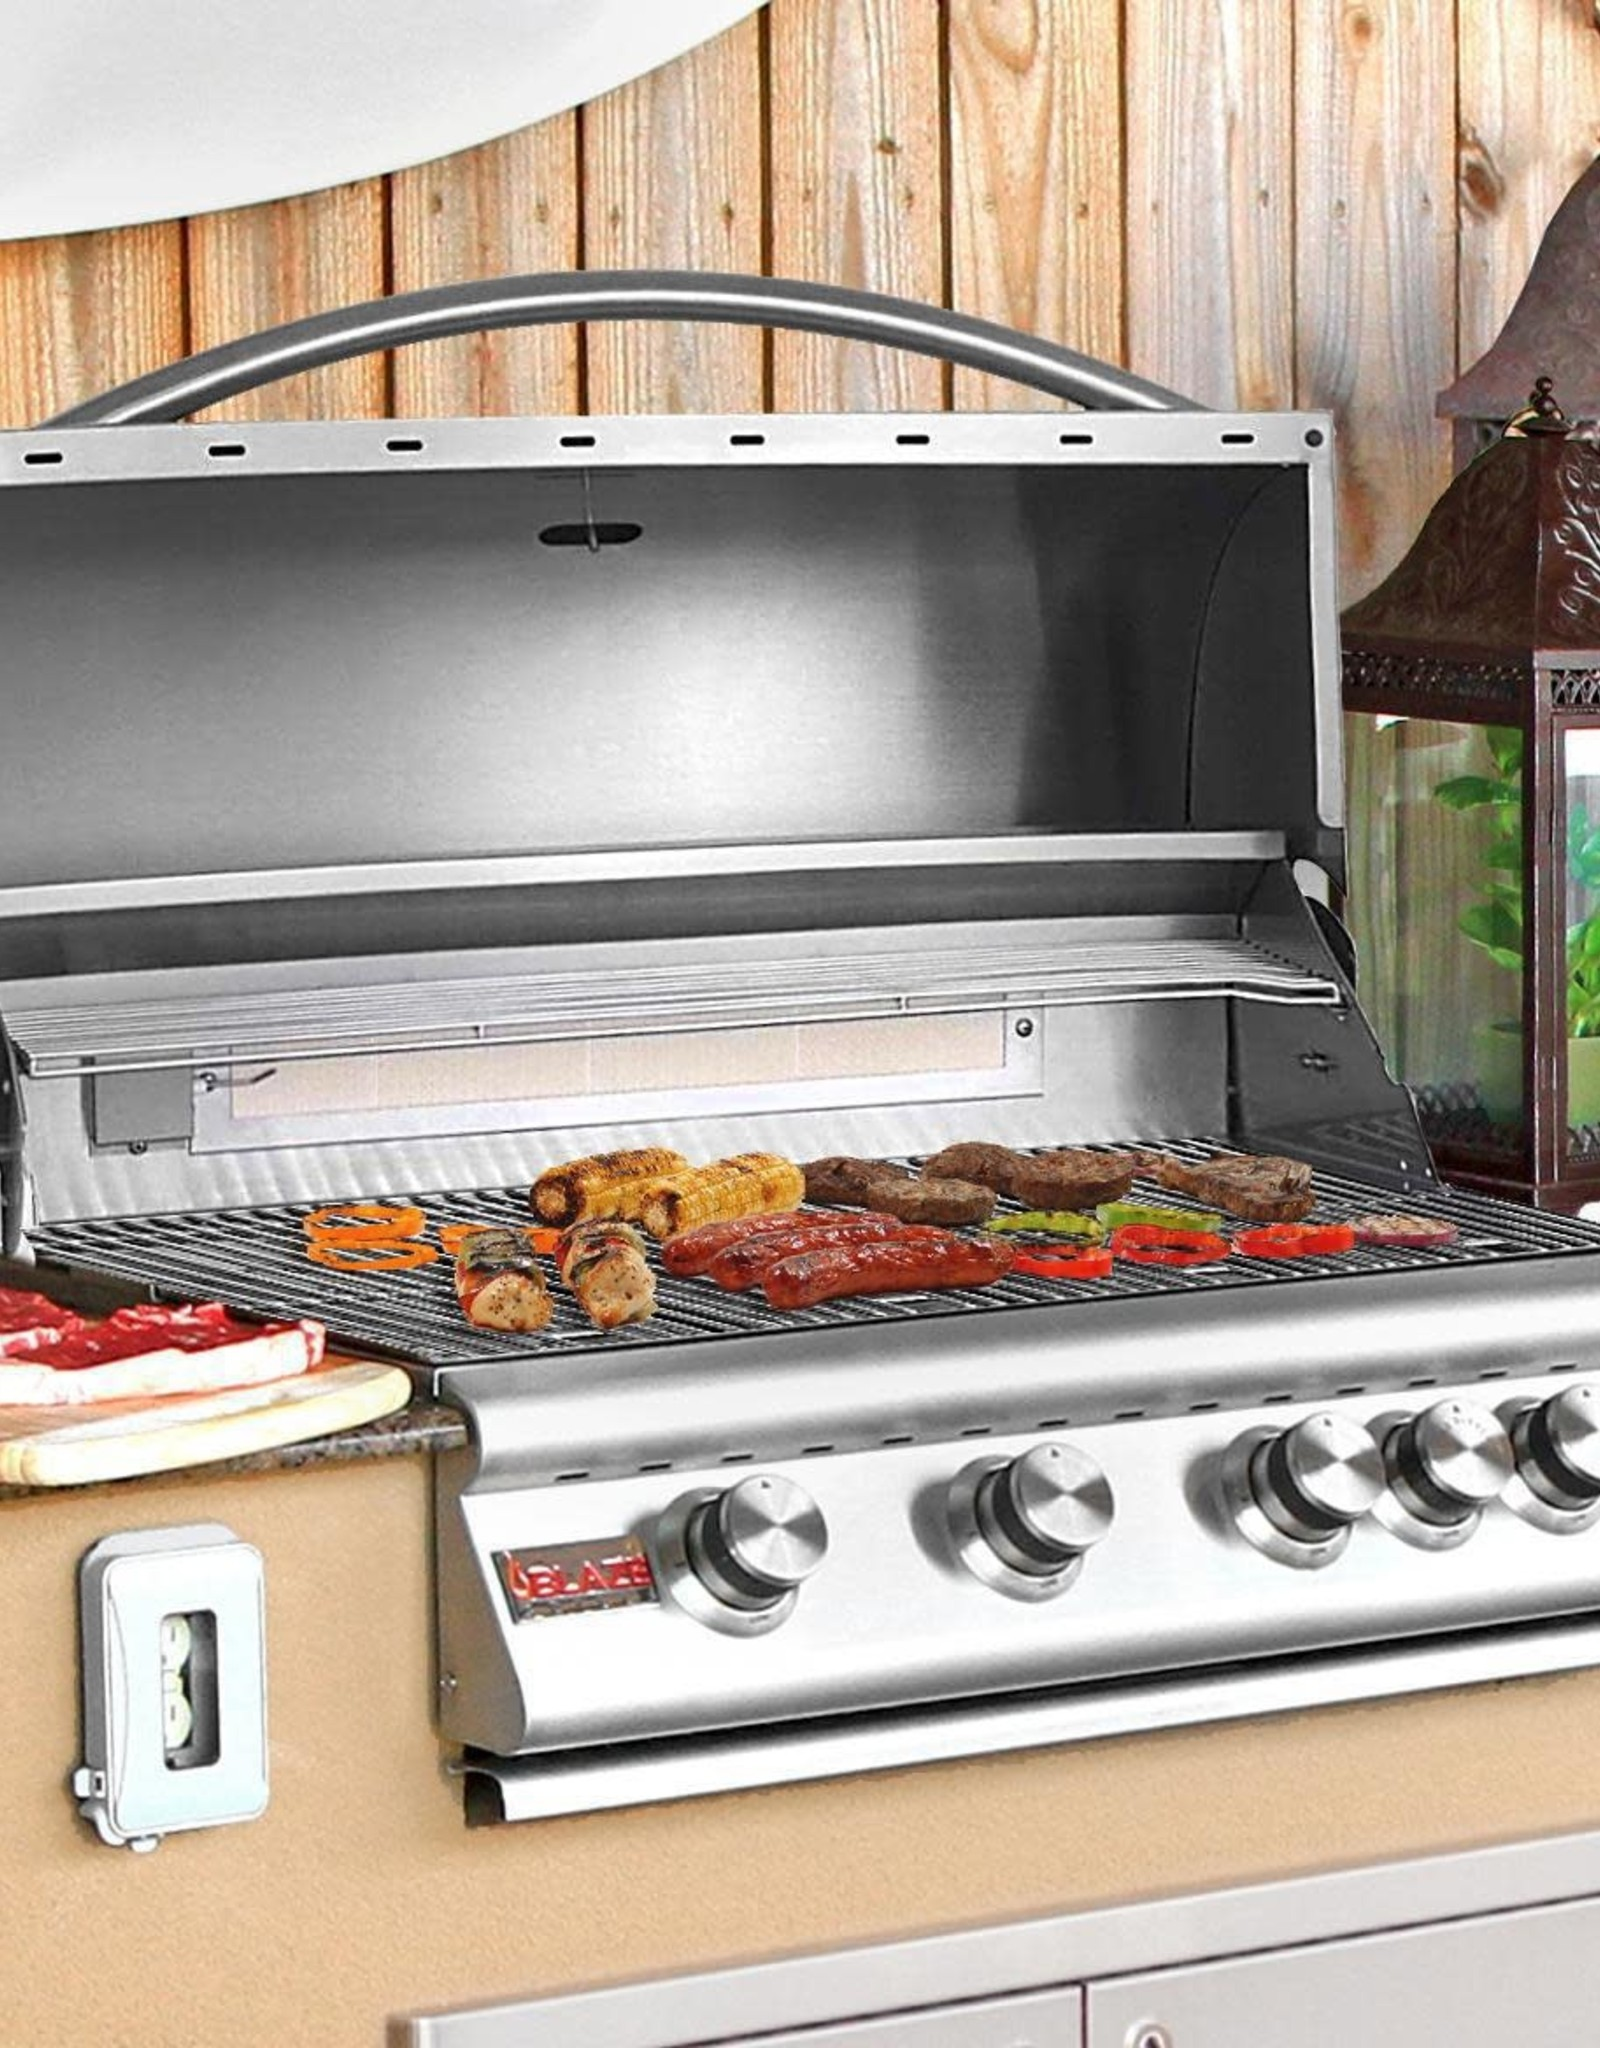 Blaze Outdoor Products Blaze  32-Inch 4-Burner Built-In Propane Gas Grill With Rear Infrared Burner